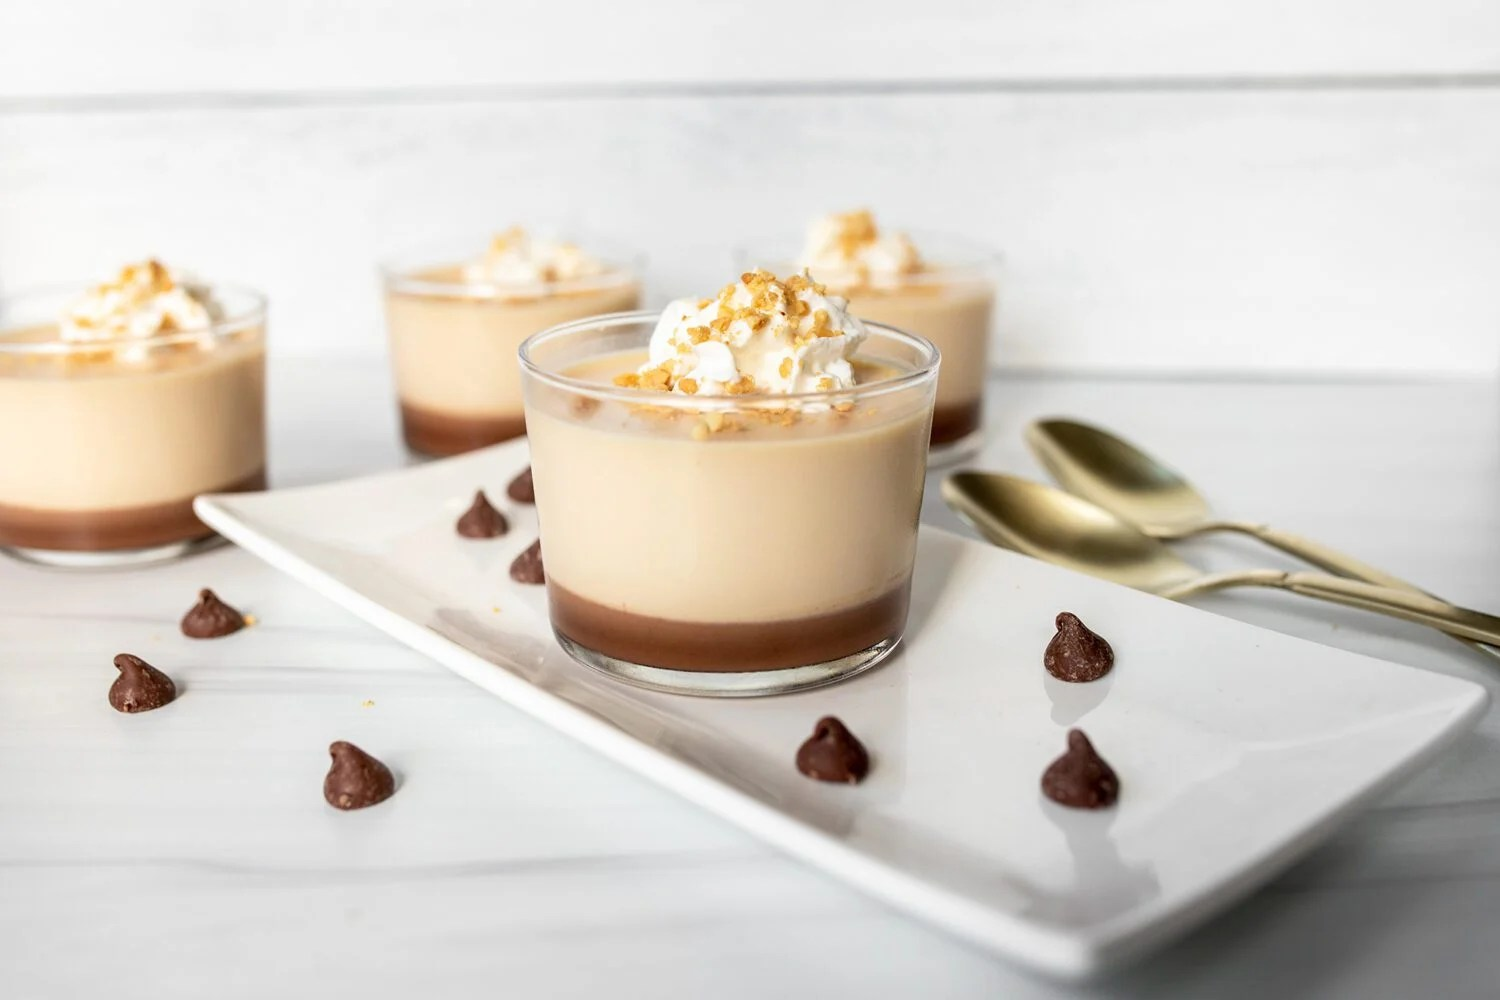 caramel and chocolate panna cotta on a plate